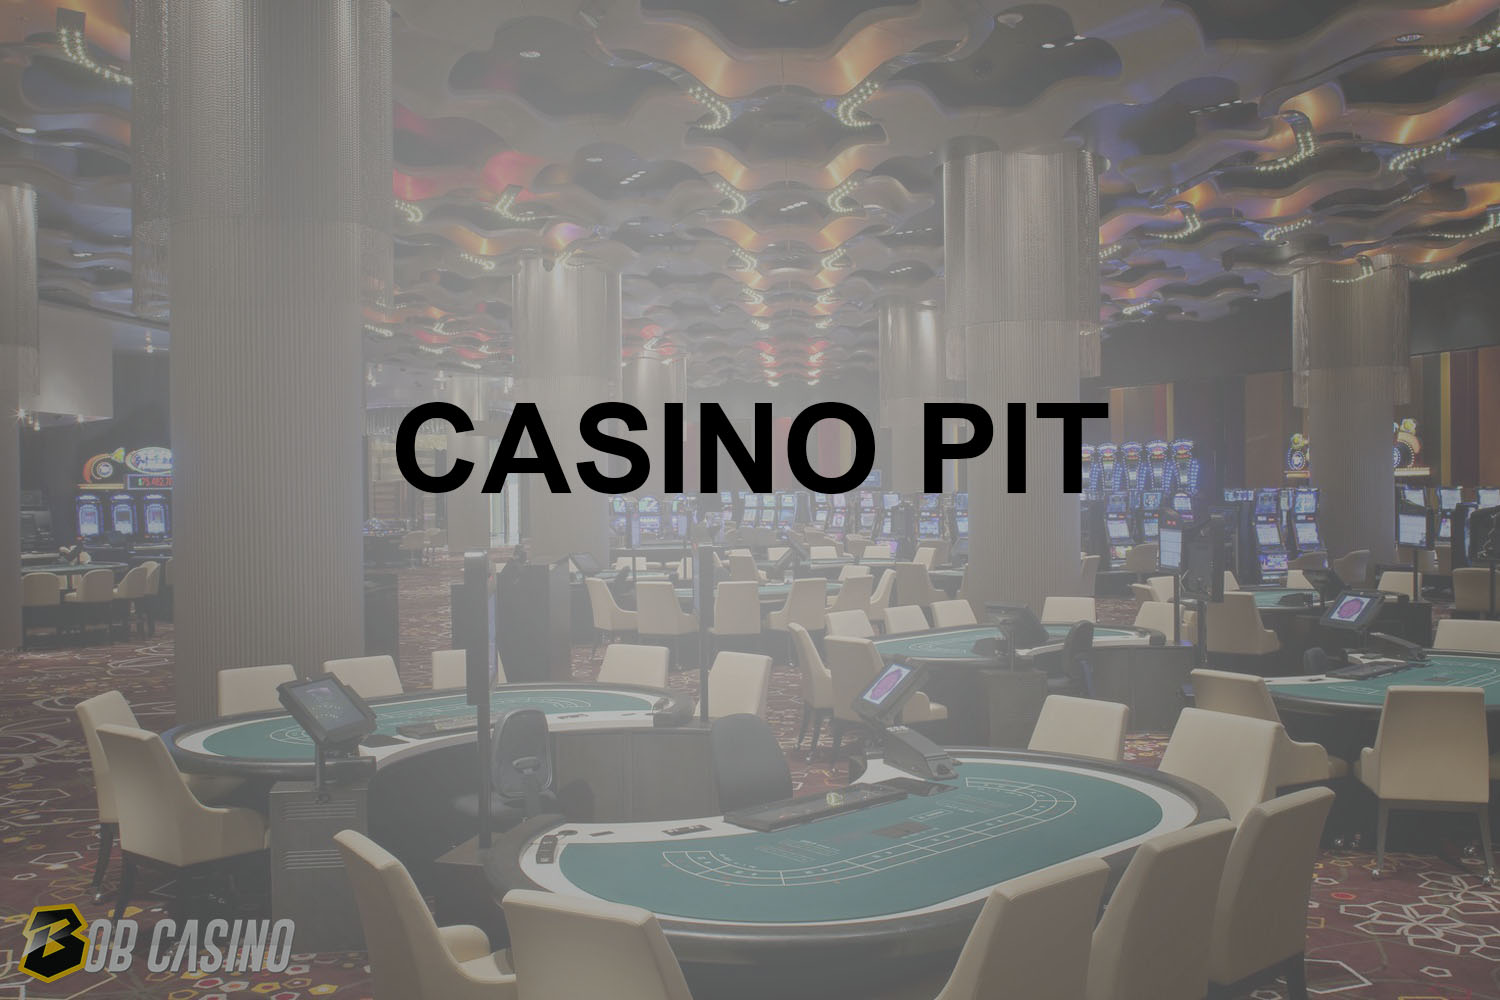 Casino Pit Term For Hall With Casino Tables